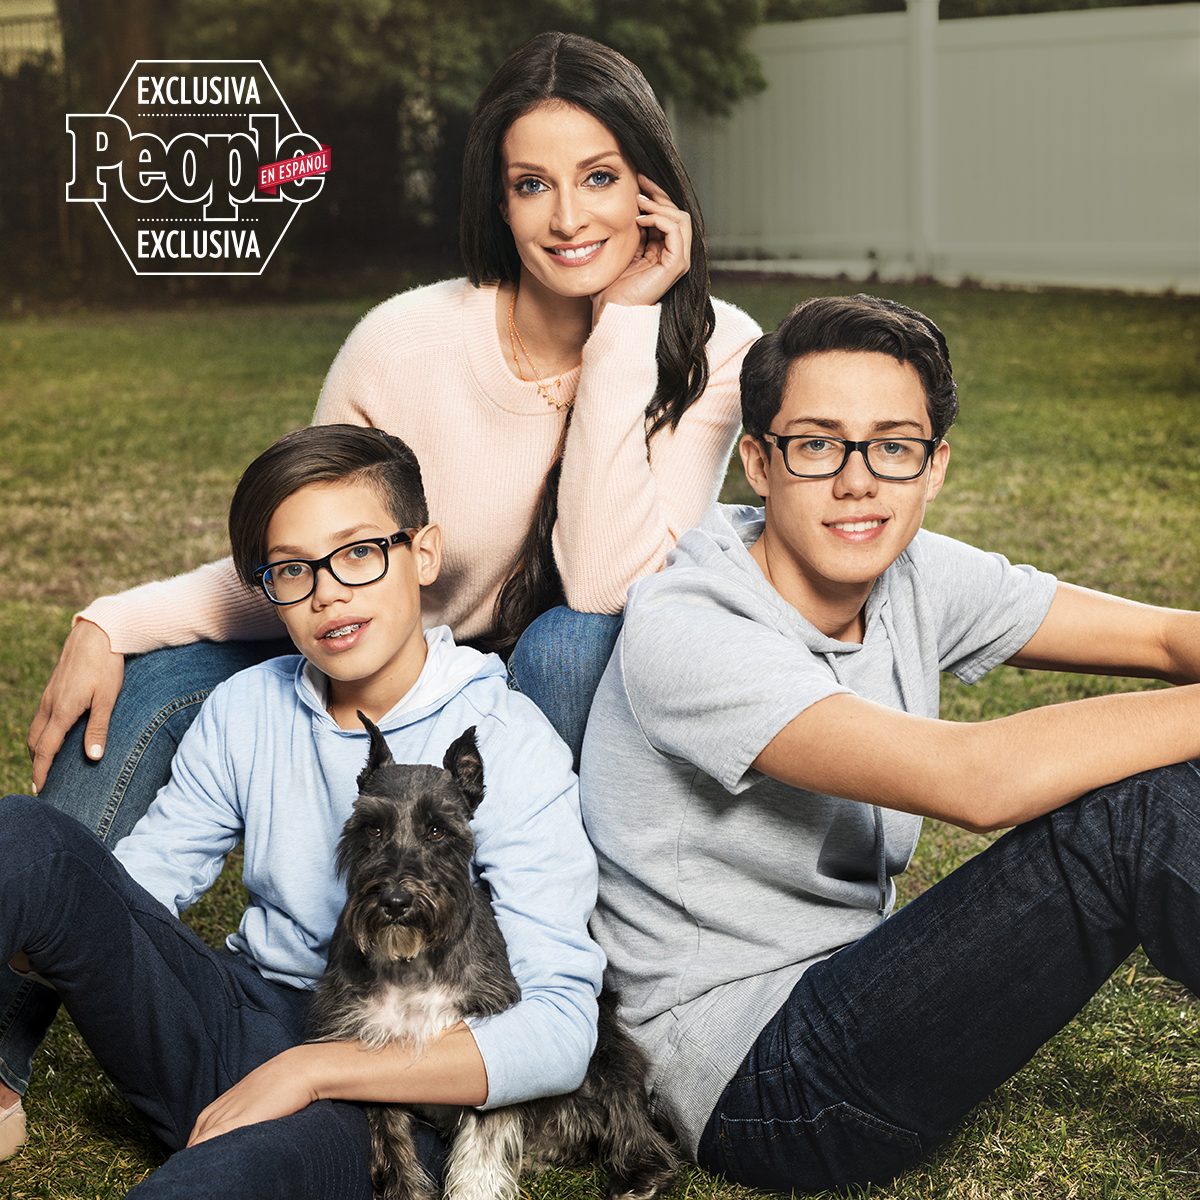 STORY: Dayanara Torres, Cristian and Ryan DATE: Wednesday, January 18, 2017 LOCATION: Private Home 5212 Lubao Ave Woodland Hills, CA 91364 Contact: Jennifer Neiman – Tel: 305.335.3054 – Email: jennifer@niemangroup.com CALL TIME: Hair and Makeup: 11:00 am Rest of Crew: 11:30 am Video Crew: 12:00 pm TALENT: Dayanara Torres Contact: Jennifer Neiman - Tel: 305.335.3054 – Email: jennifer@niemangroup.com CREW: Photographer: Omar Cruz Cell: 305.479.6179 – Email: omar@omarcruz.com Stylist: Kristin Hans Cell: 310.666.7545 – Email: kristinhansf@gmail.com Hair and makeup: Paul Anthony Cell: 786.208.5505 – Email: paulanthonystyle@gmail.com Executive Editor: Maria Morales Cell: 305.322.6603 – Email: maria_morales@peoplemag.com Photo Director: Marlenni Taveras Cell: 914.715.1799 - Email marlenni_taveras@peoplemag.com VIDEO: Yairo Evrielli Tel: 424.283.1705 – Email: evrielli@hotmail.com Contact: Elvis Lizardo Tel: 212.522.9658 – Email: elvis_lizardo@peoplemag.com CATERING: City Kitchen – 12:00 pm - Lunch